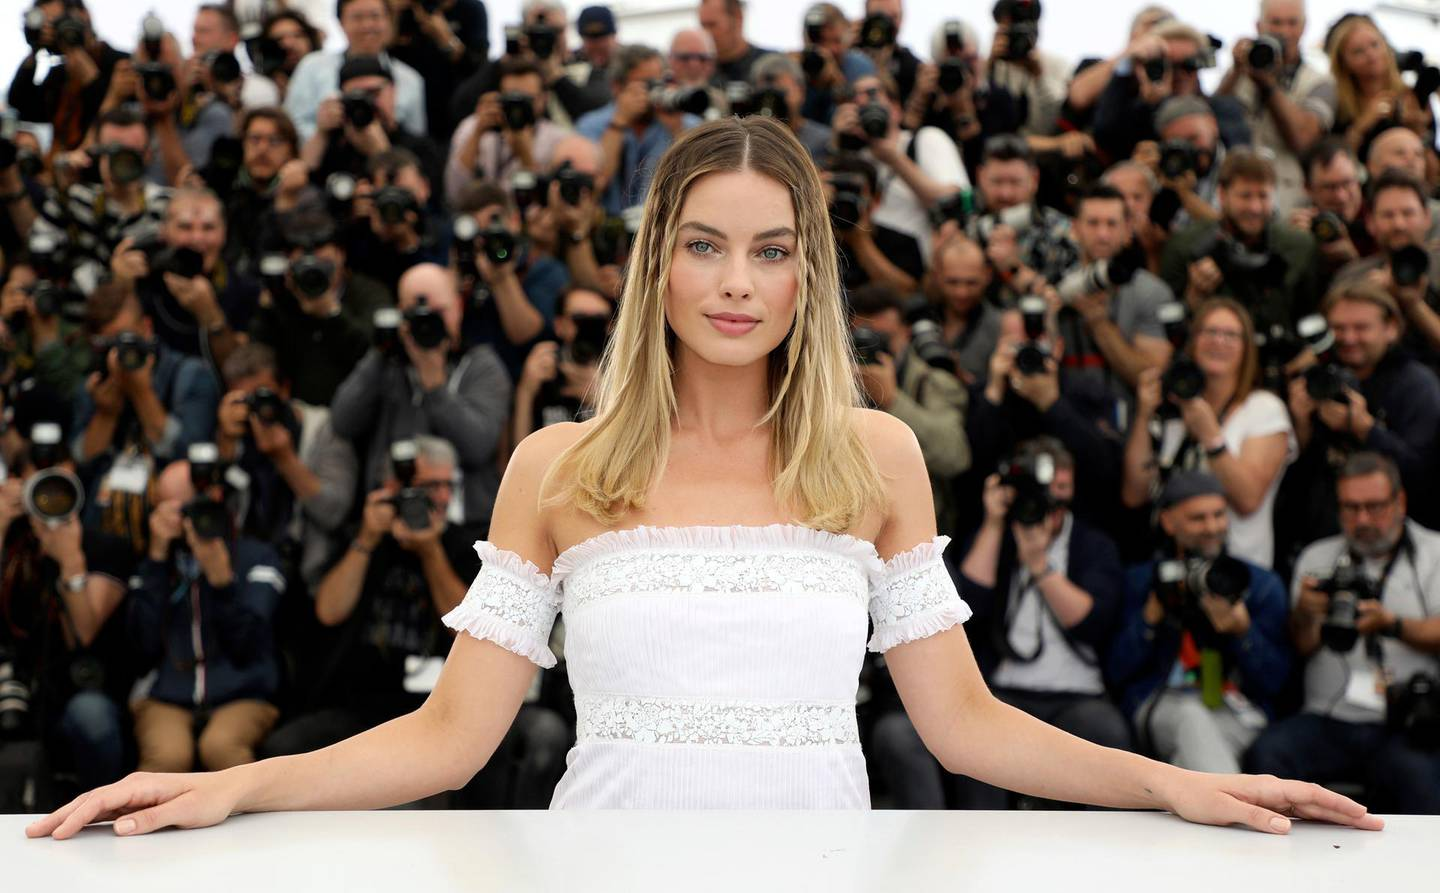 """FILE - In this May 22, 2019 file photo, Margot Robbie poses for photographers at the photo call for the film """"Once Upon a Time in Hollywood"""" at the 72nd international film festival, Cannes, southern France. Robbie turns 30 on July 2. (Photo by Vianney Le Caer/Invision/AP, File)"""